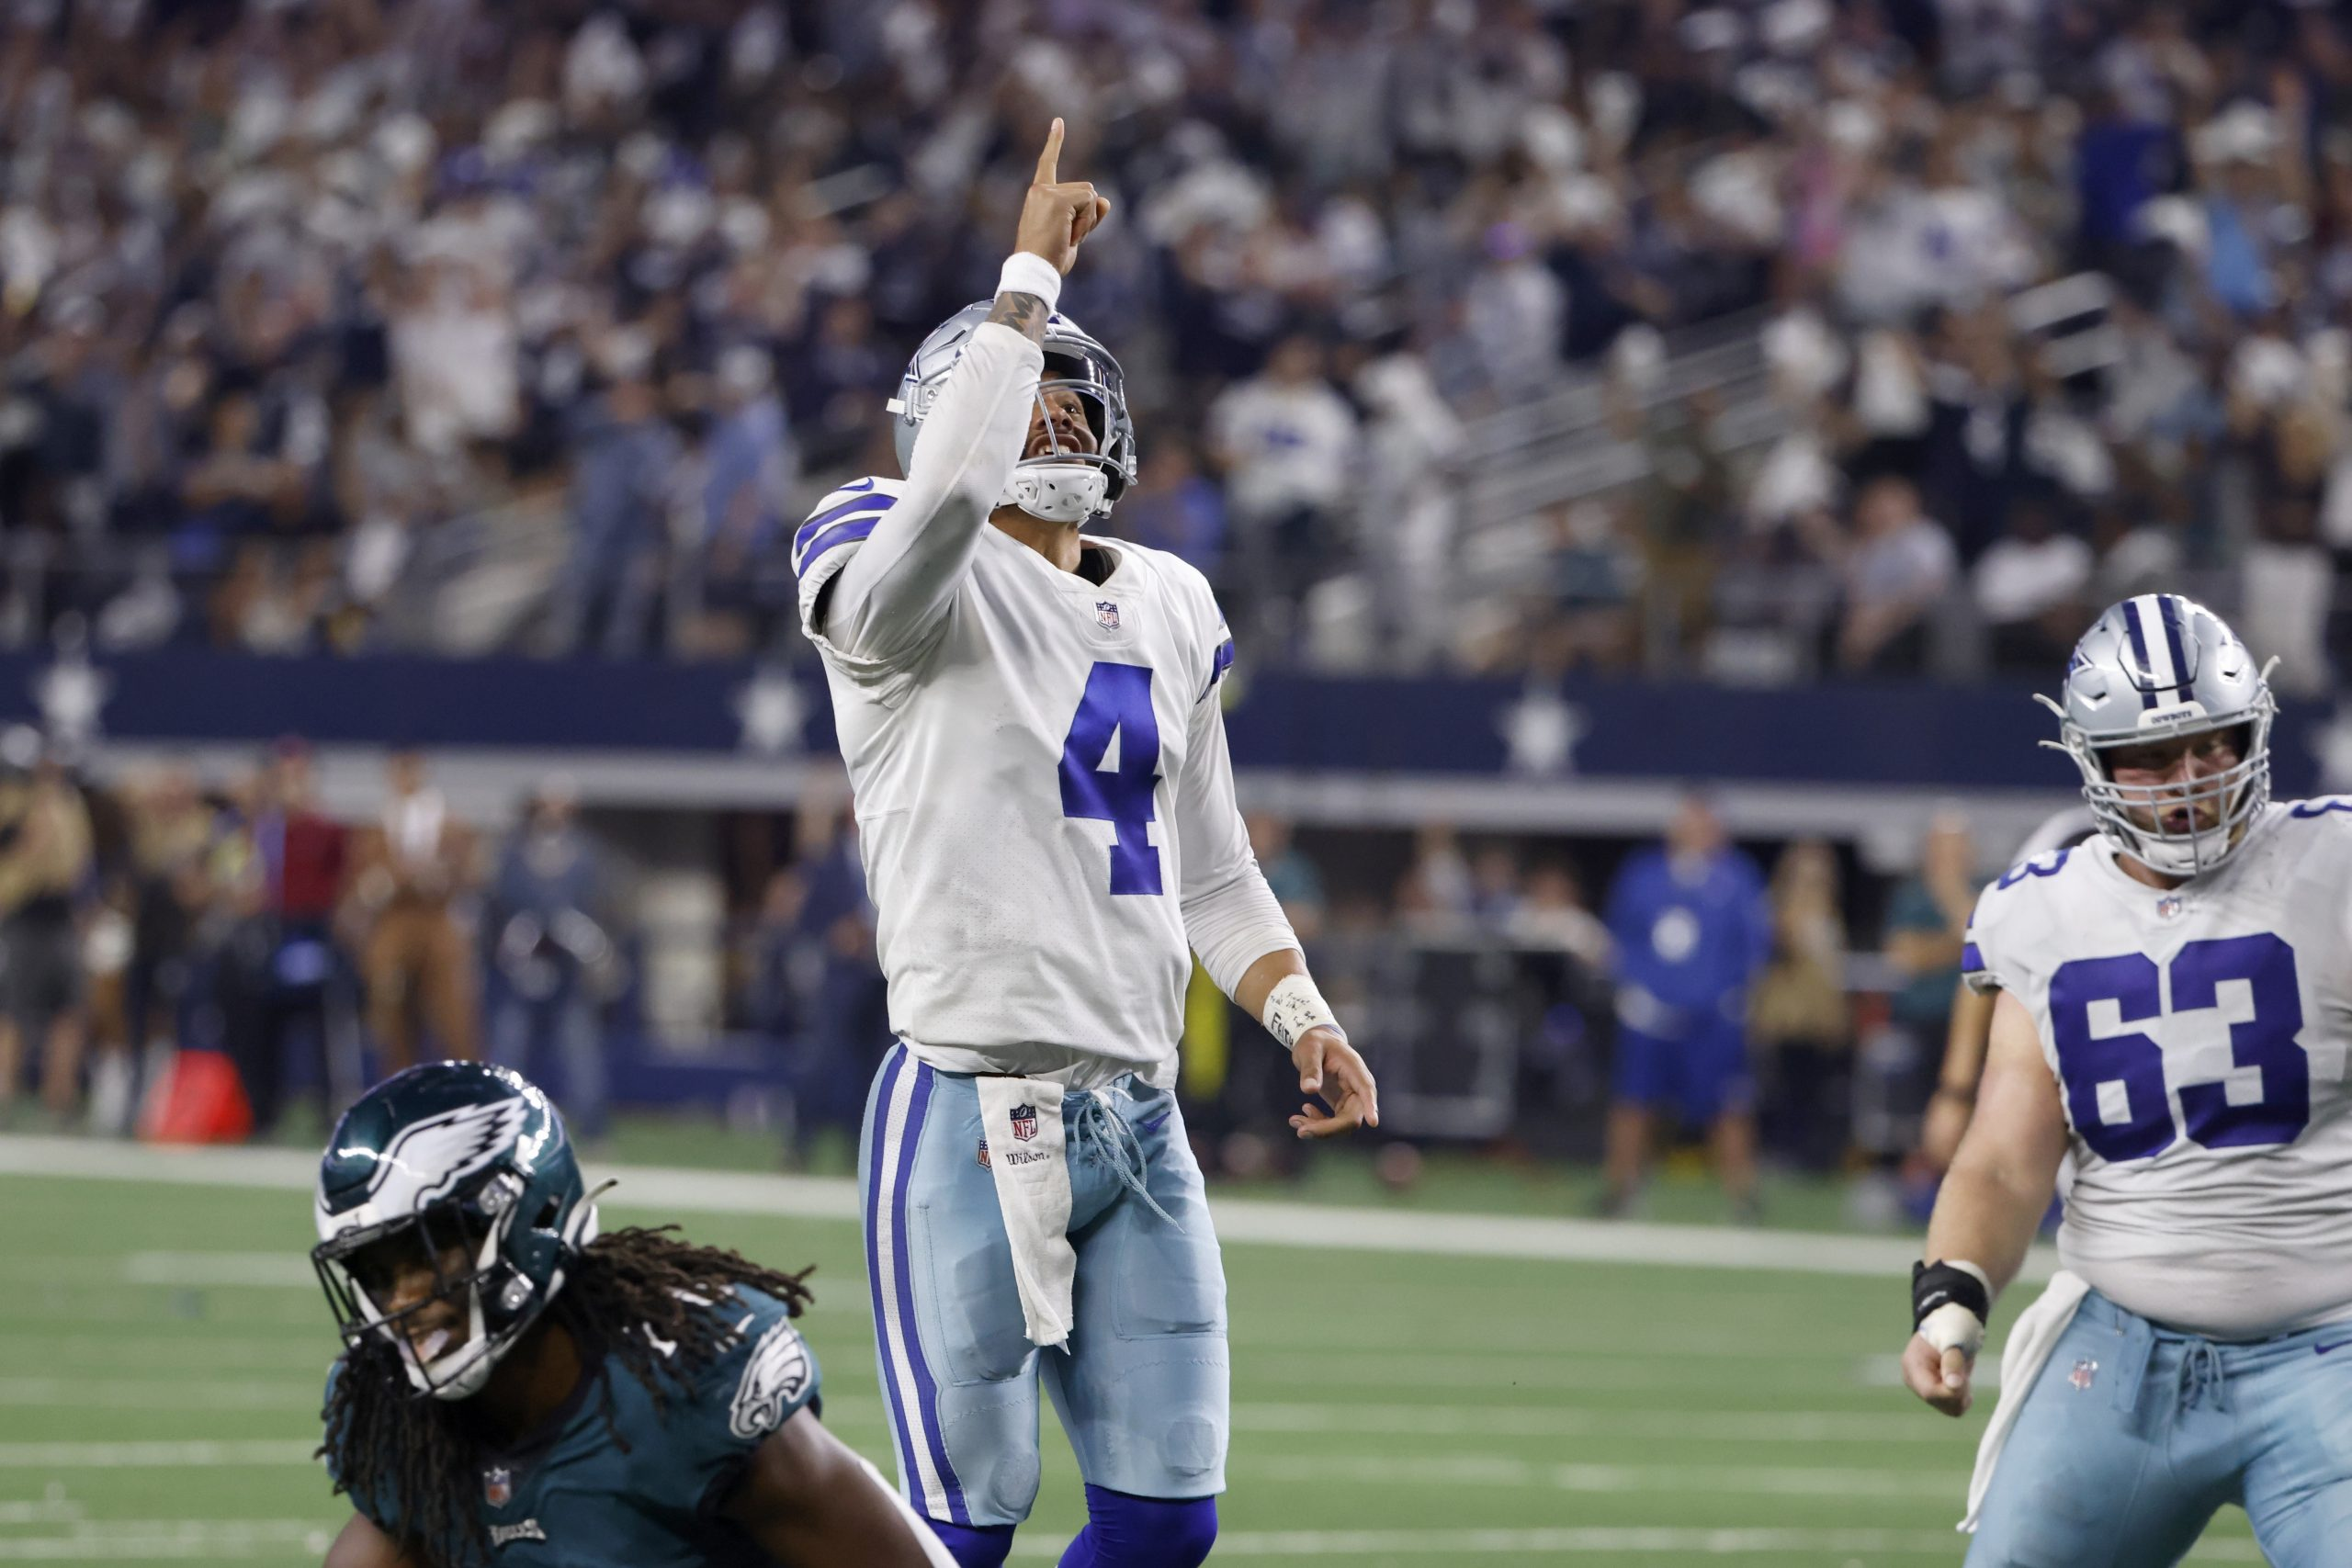 Prescott, Cowboys beat Eagles in 1st home game since injury 1